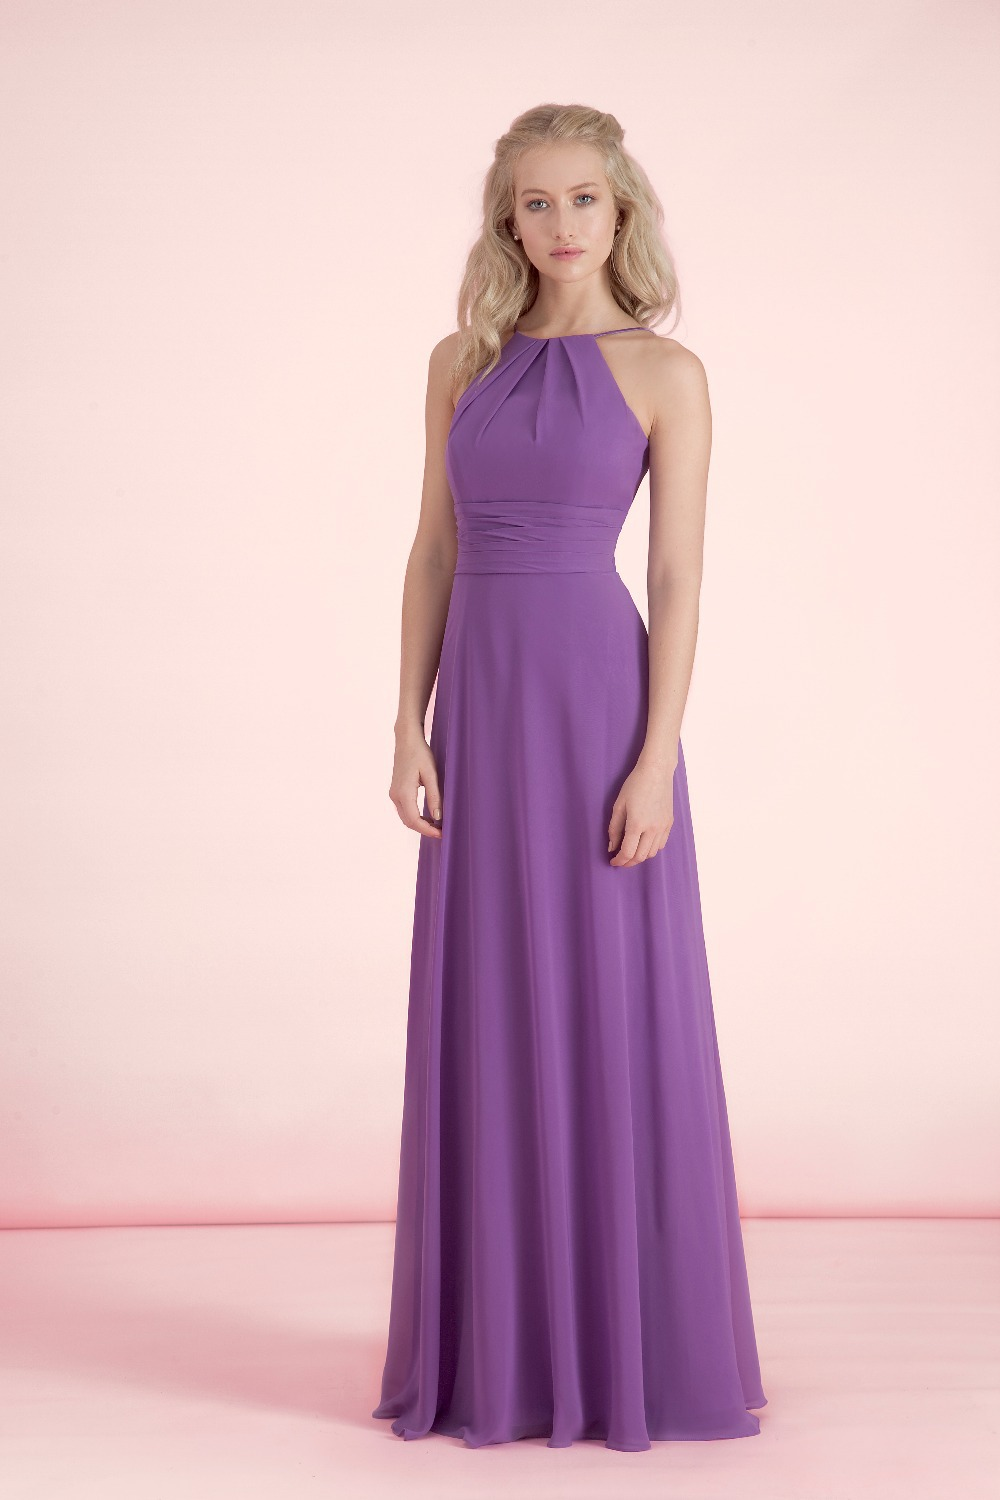 Aliexpress buy purple a line chiffon halter bridesmaid aliexpress buy purple a line chiffon halter bridesmaid dresses with low back plus size prom party gown long dresses for wedding guests klr06 from ombrellifo Choice Image